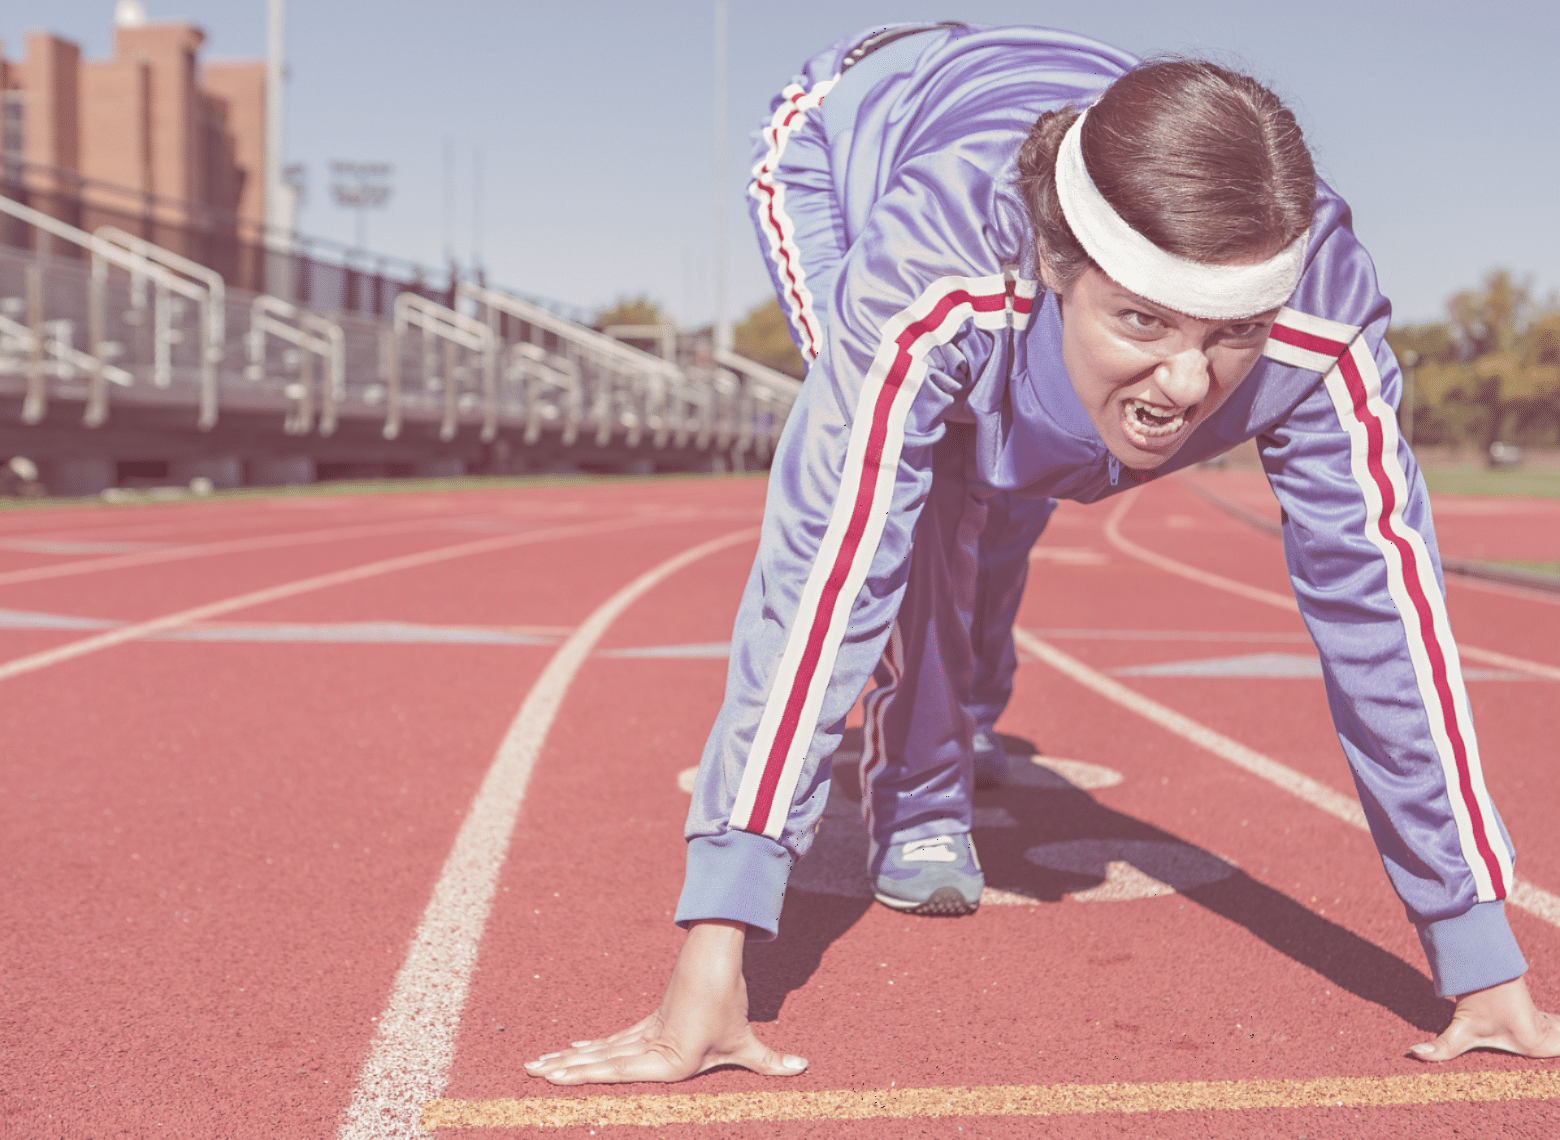 A women at a track starting line, ready to start running.